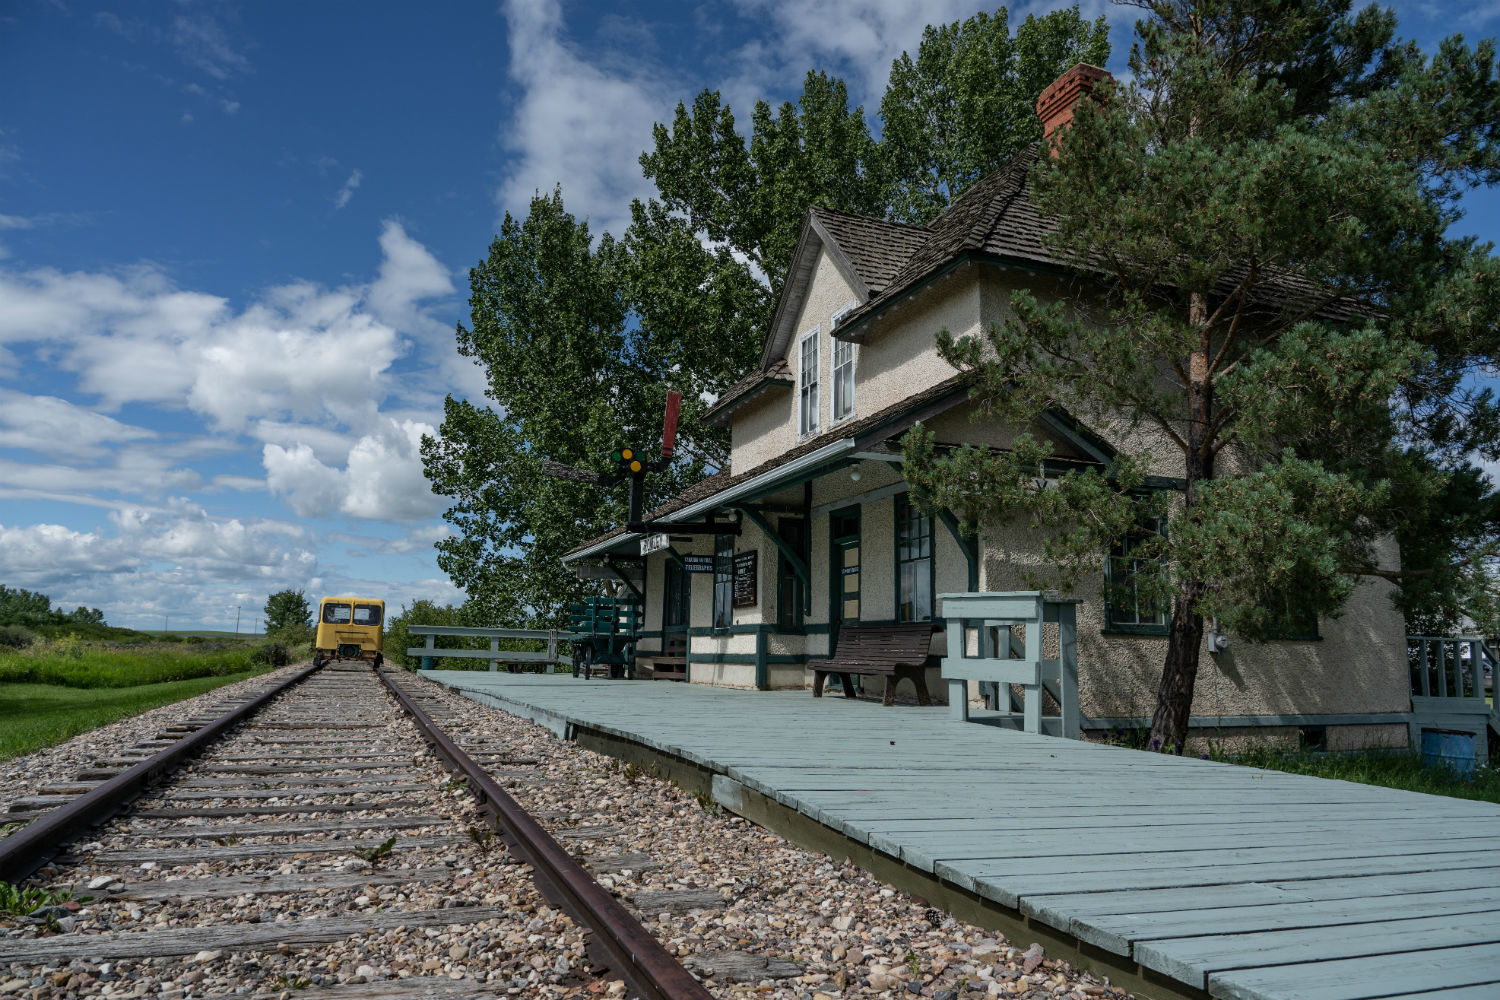 The main rail line was removed years ago but a short section of track remains outside the historic station in Rowley, Alta. (Vincent Bonnay/Radio-Canada)